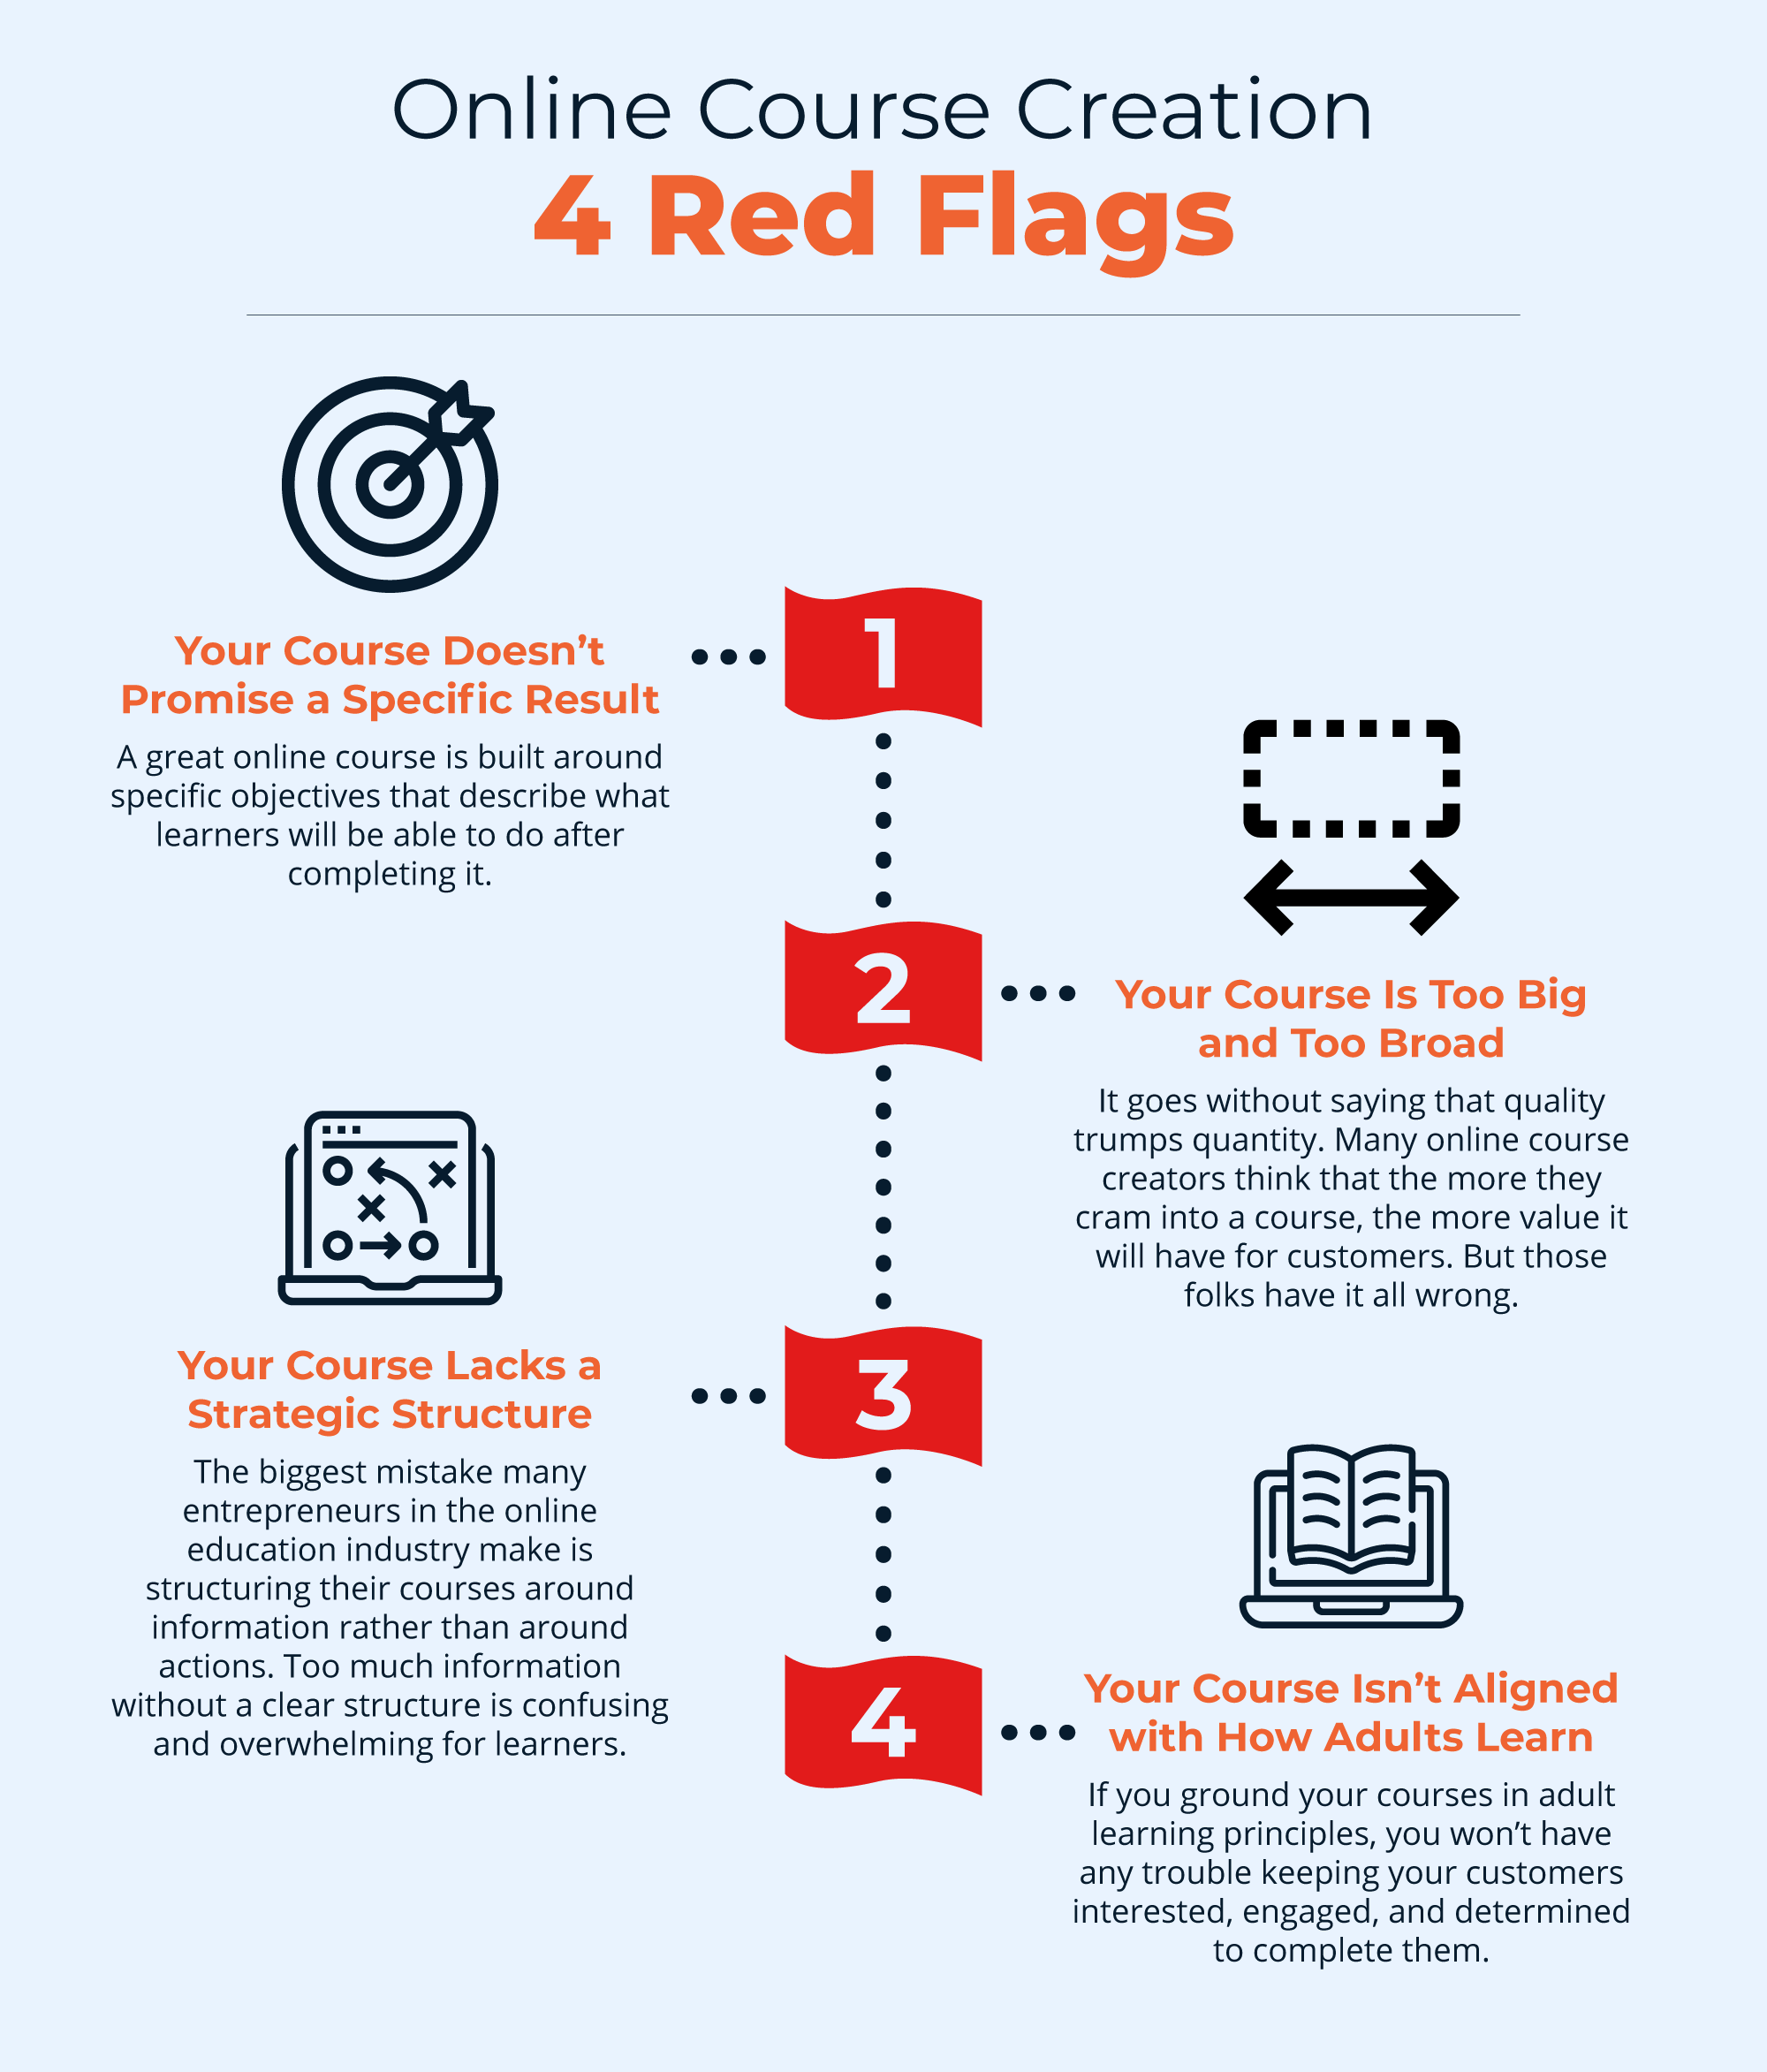 4RedFlags